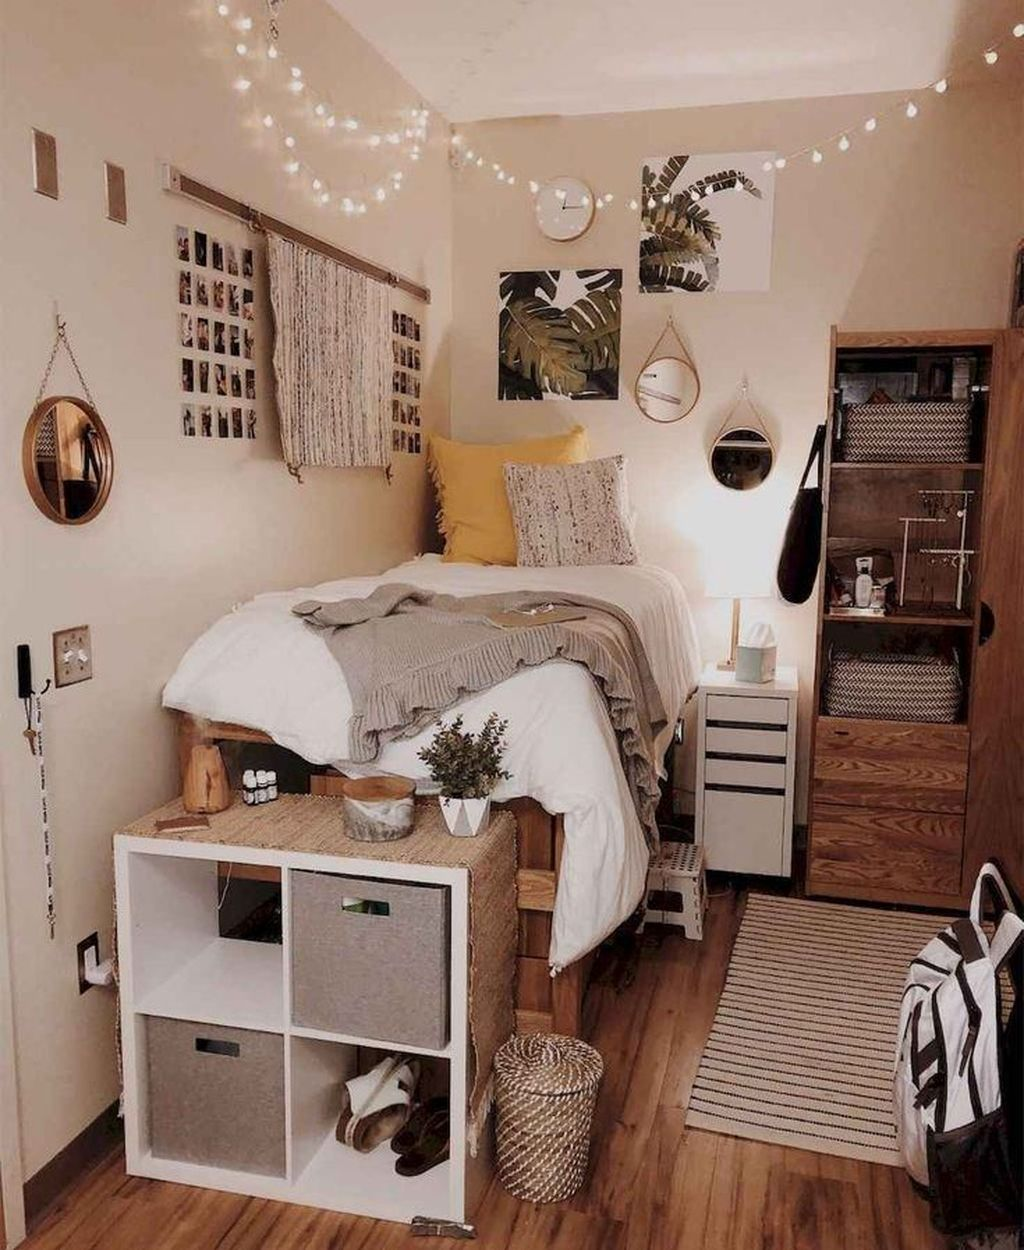 The Best DIY Bedroom Decor Ideas You Have To Try 27